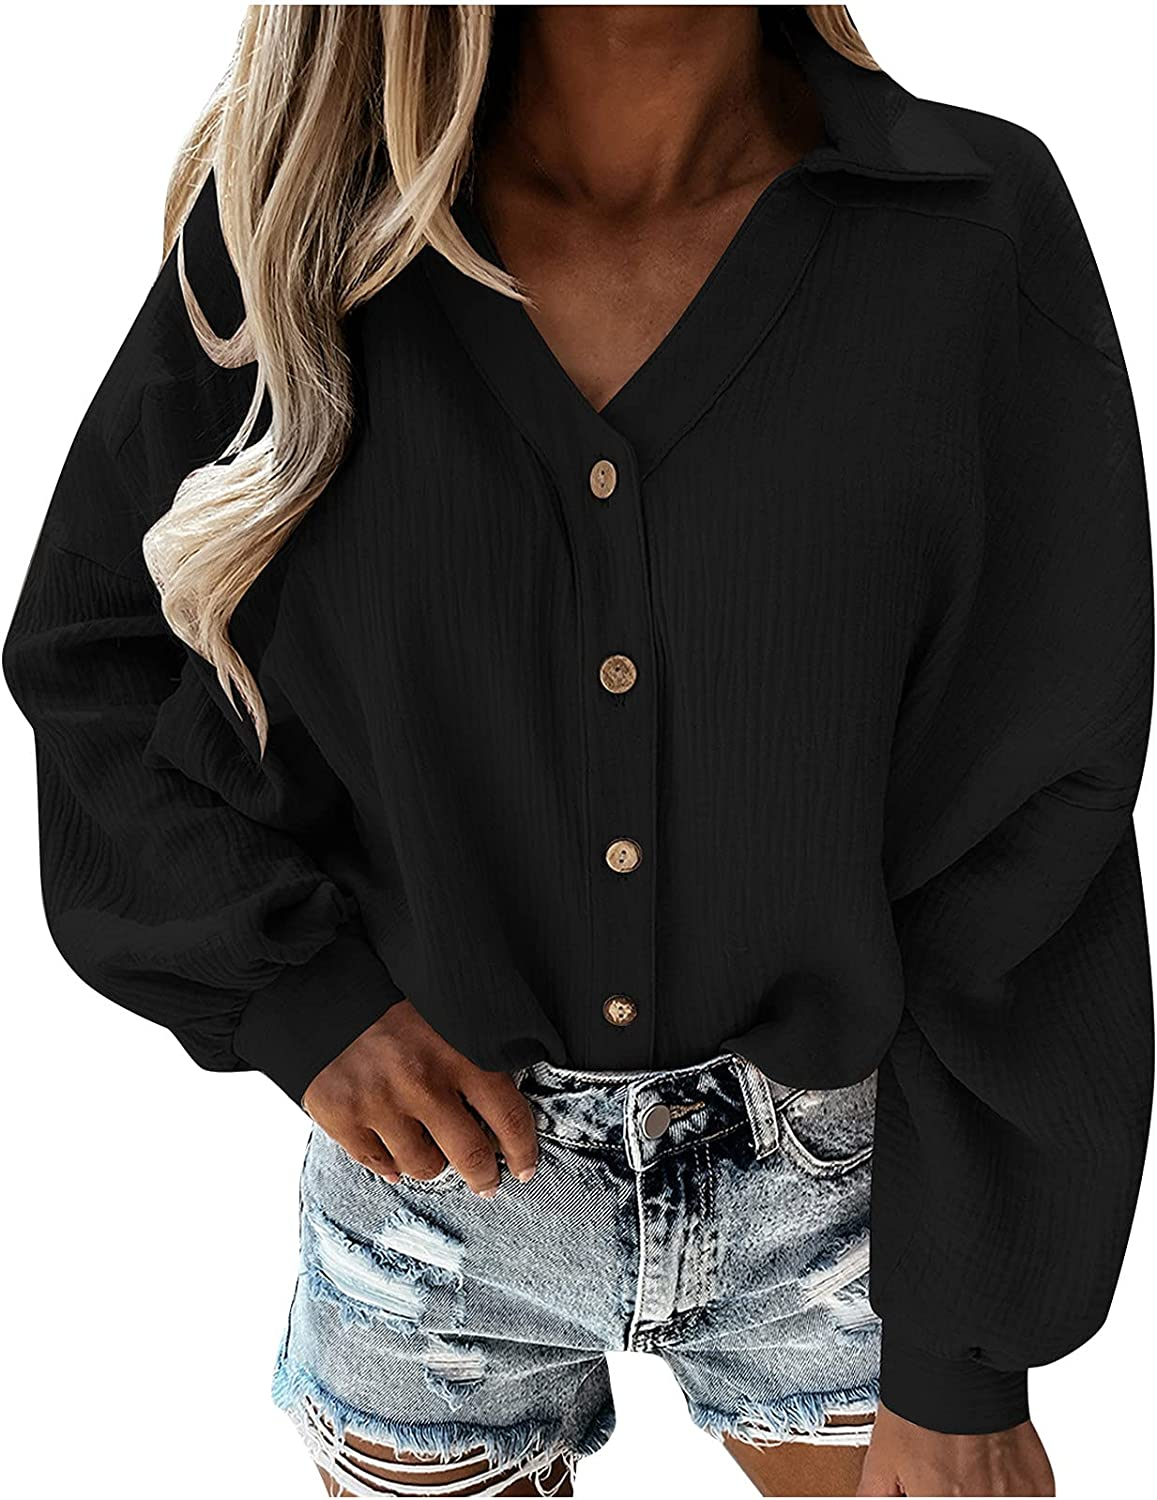 Shirts for Women Casual Solid Lantern Long Sleeve T-Shirts Tops V-Neck Buttons Cardigan Tunic Tops